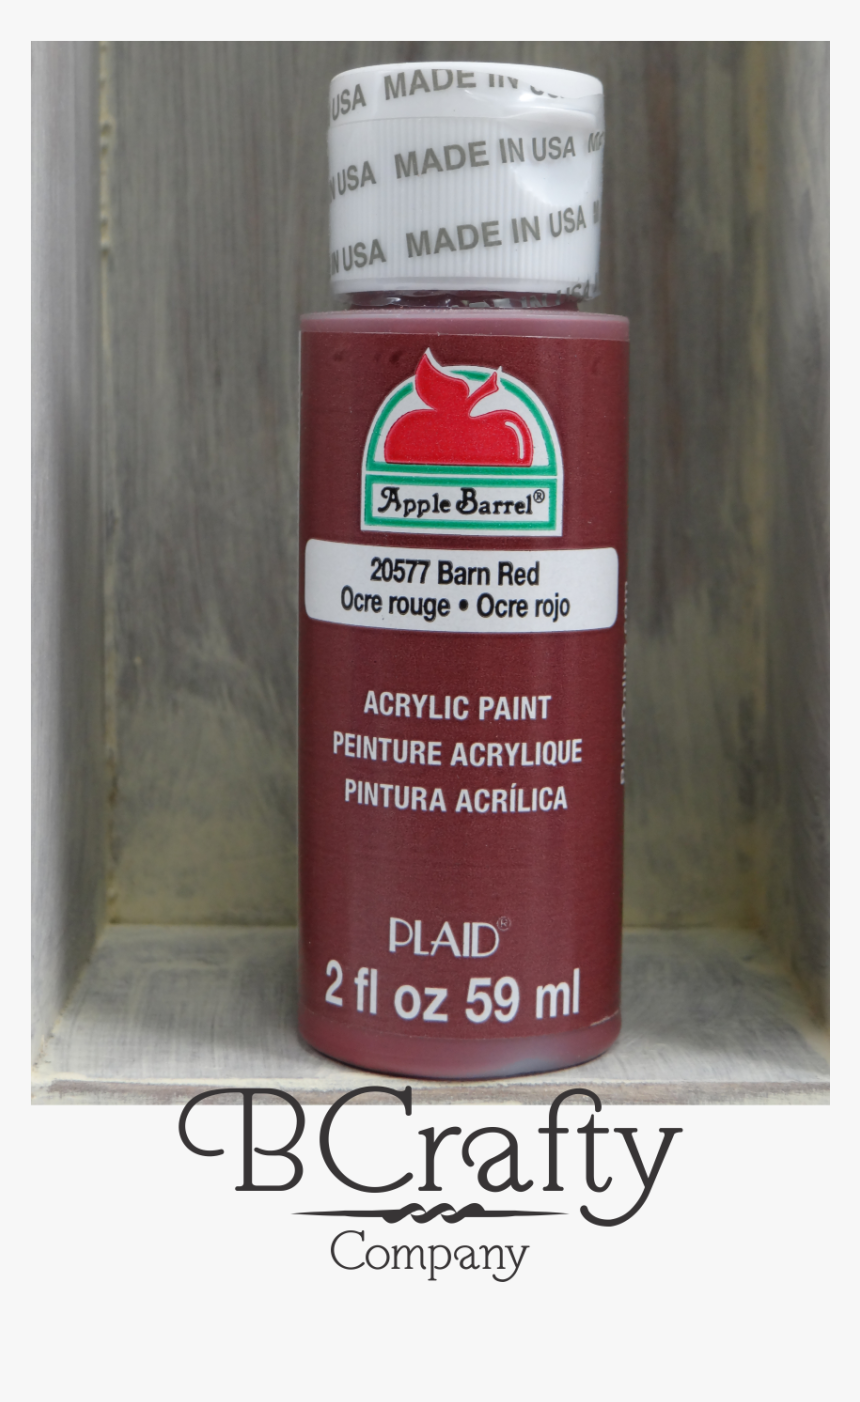 20577 Barn Red Apple Barrel Craft Paint - Cranberry, HD Png Download, Free Download